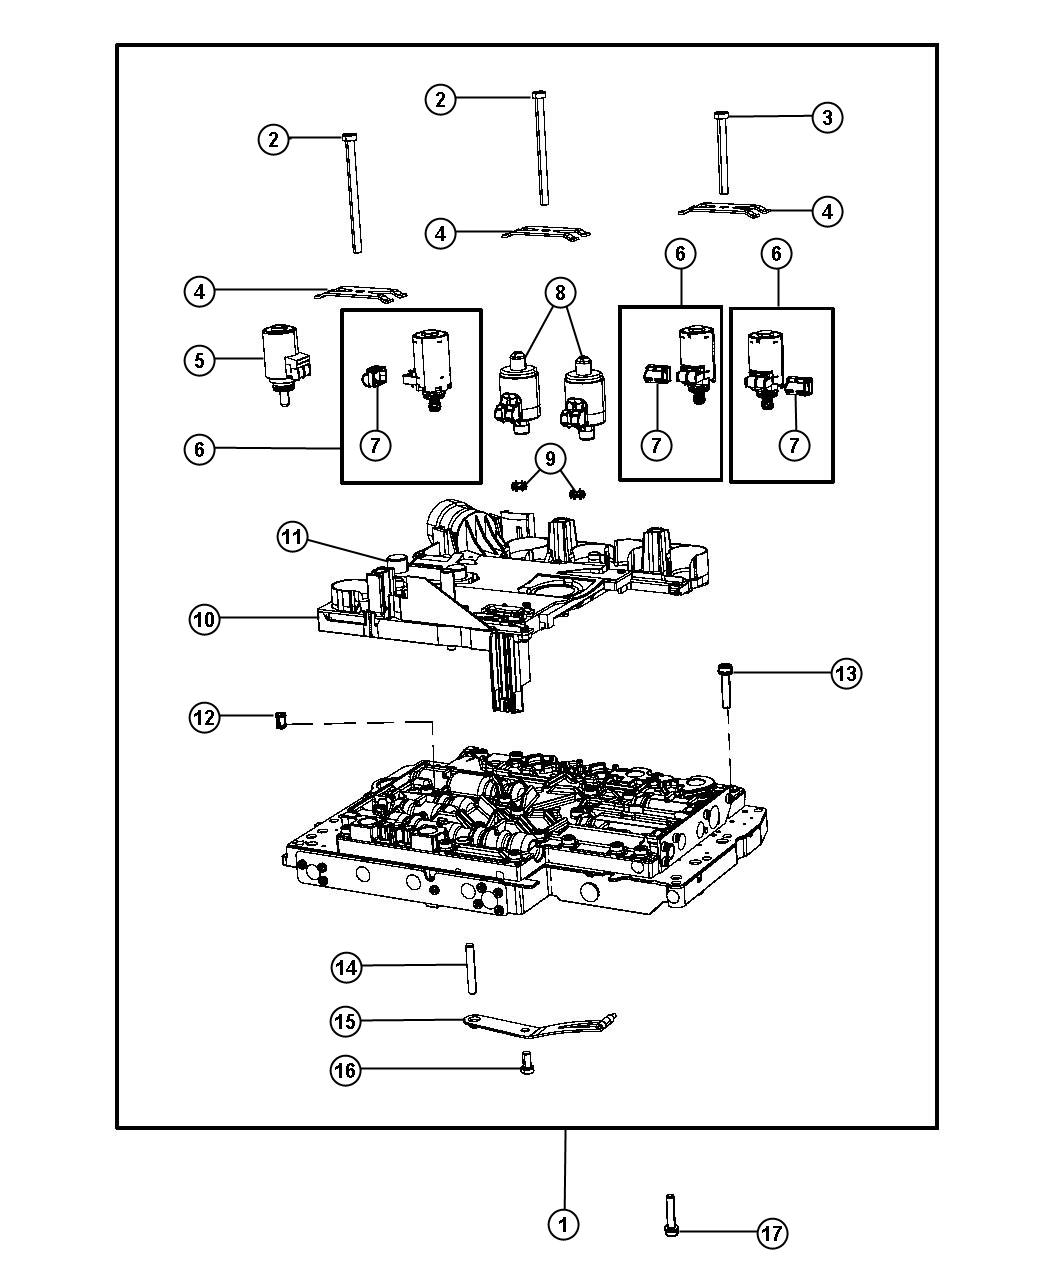 Jeep Connector Assembly Valve Body Electrical